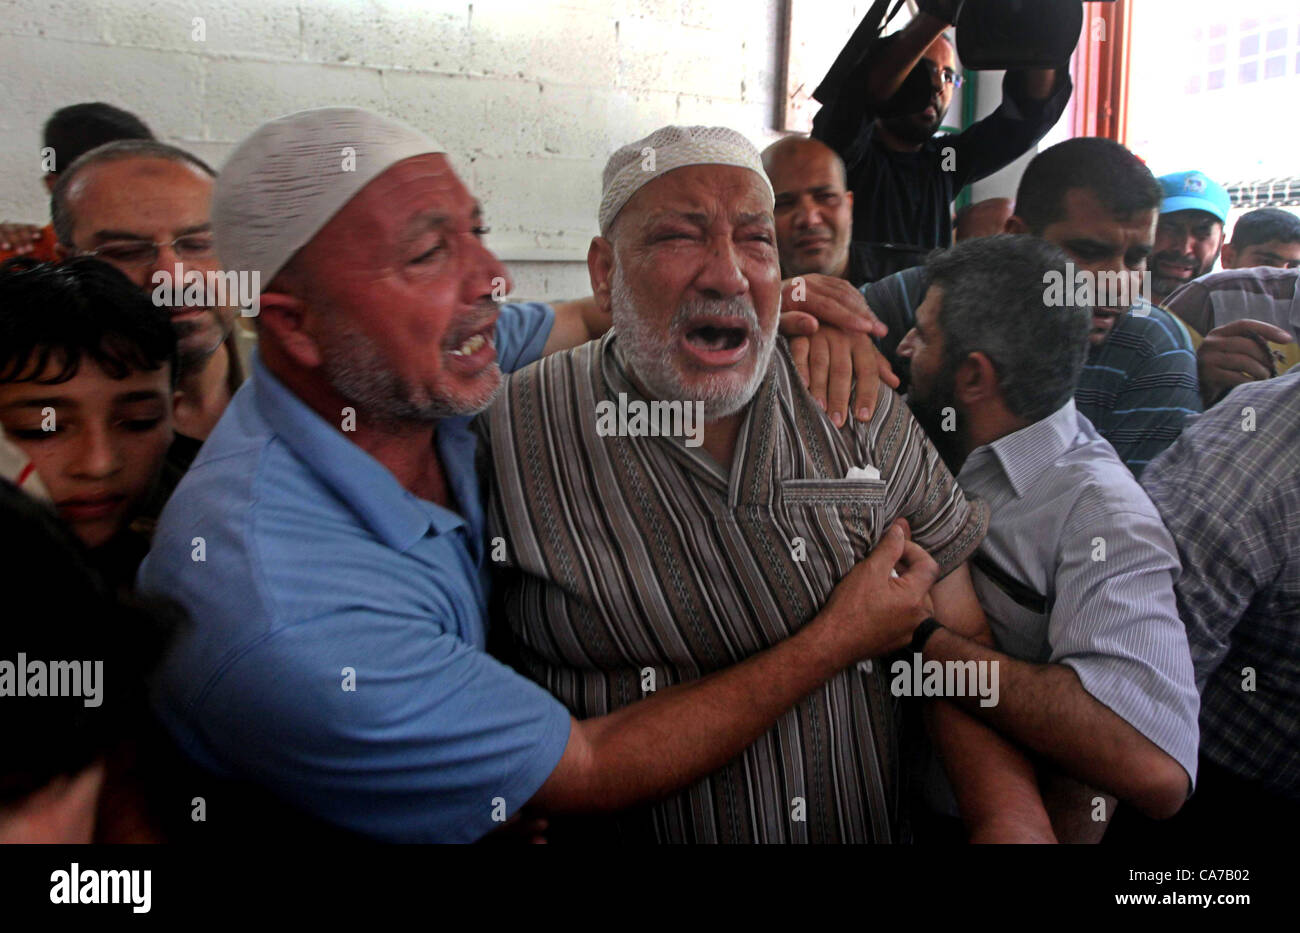 June 20, 2012 - Gaza City, Gaza Strip, Palestinian Territory - Palestinian Mohammed al-Dam grieves during the funeral - Stock Image